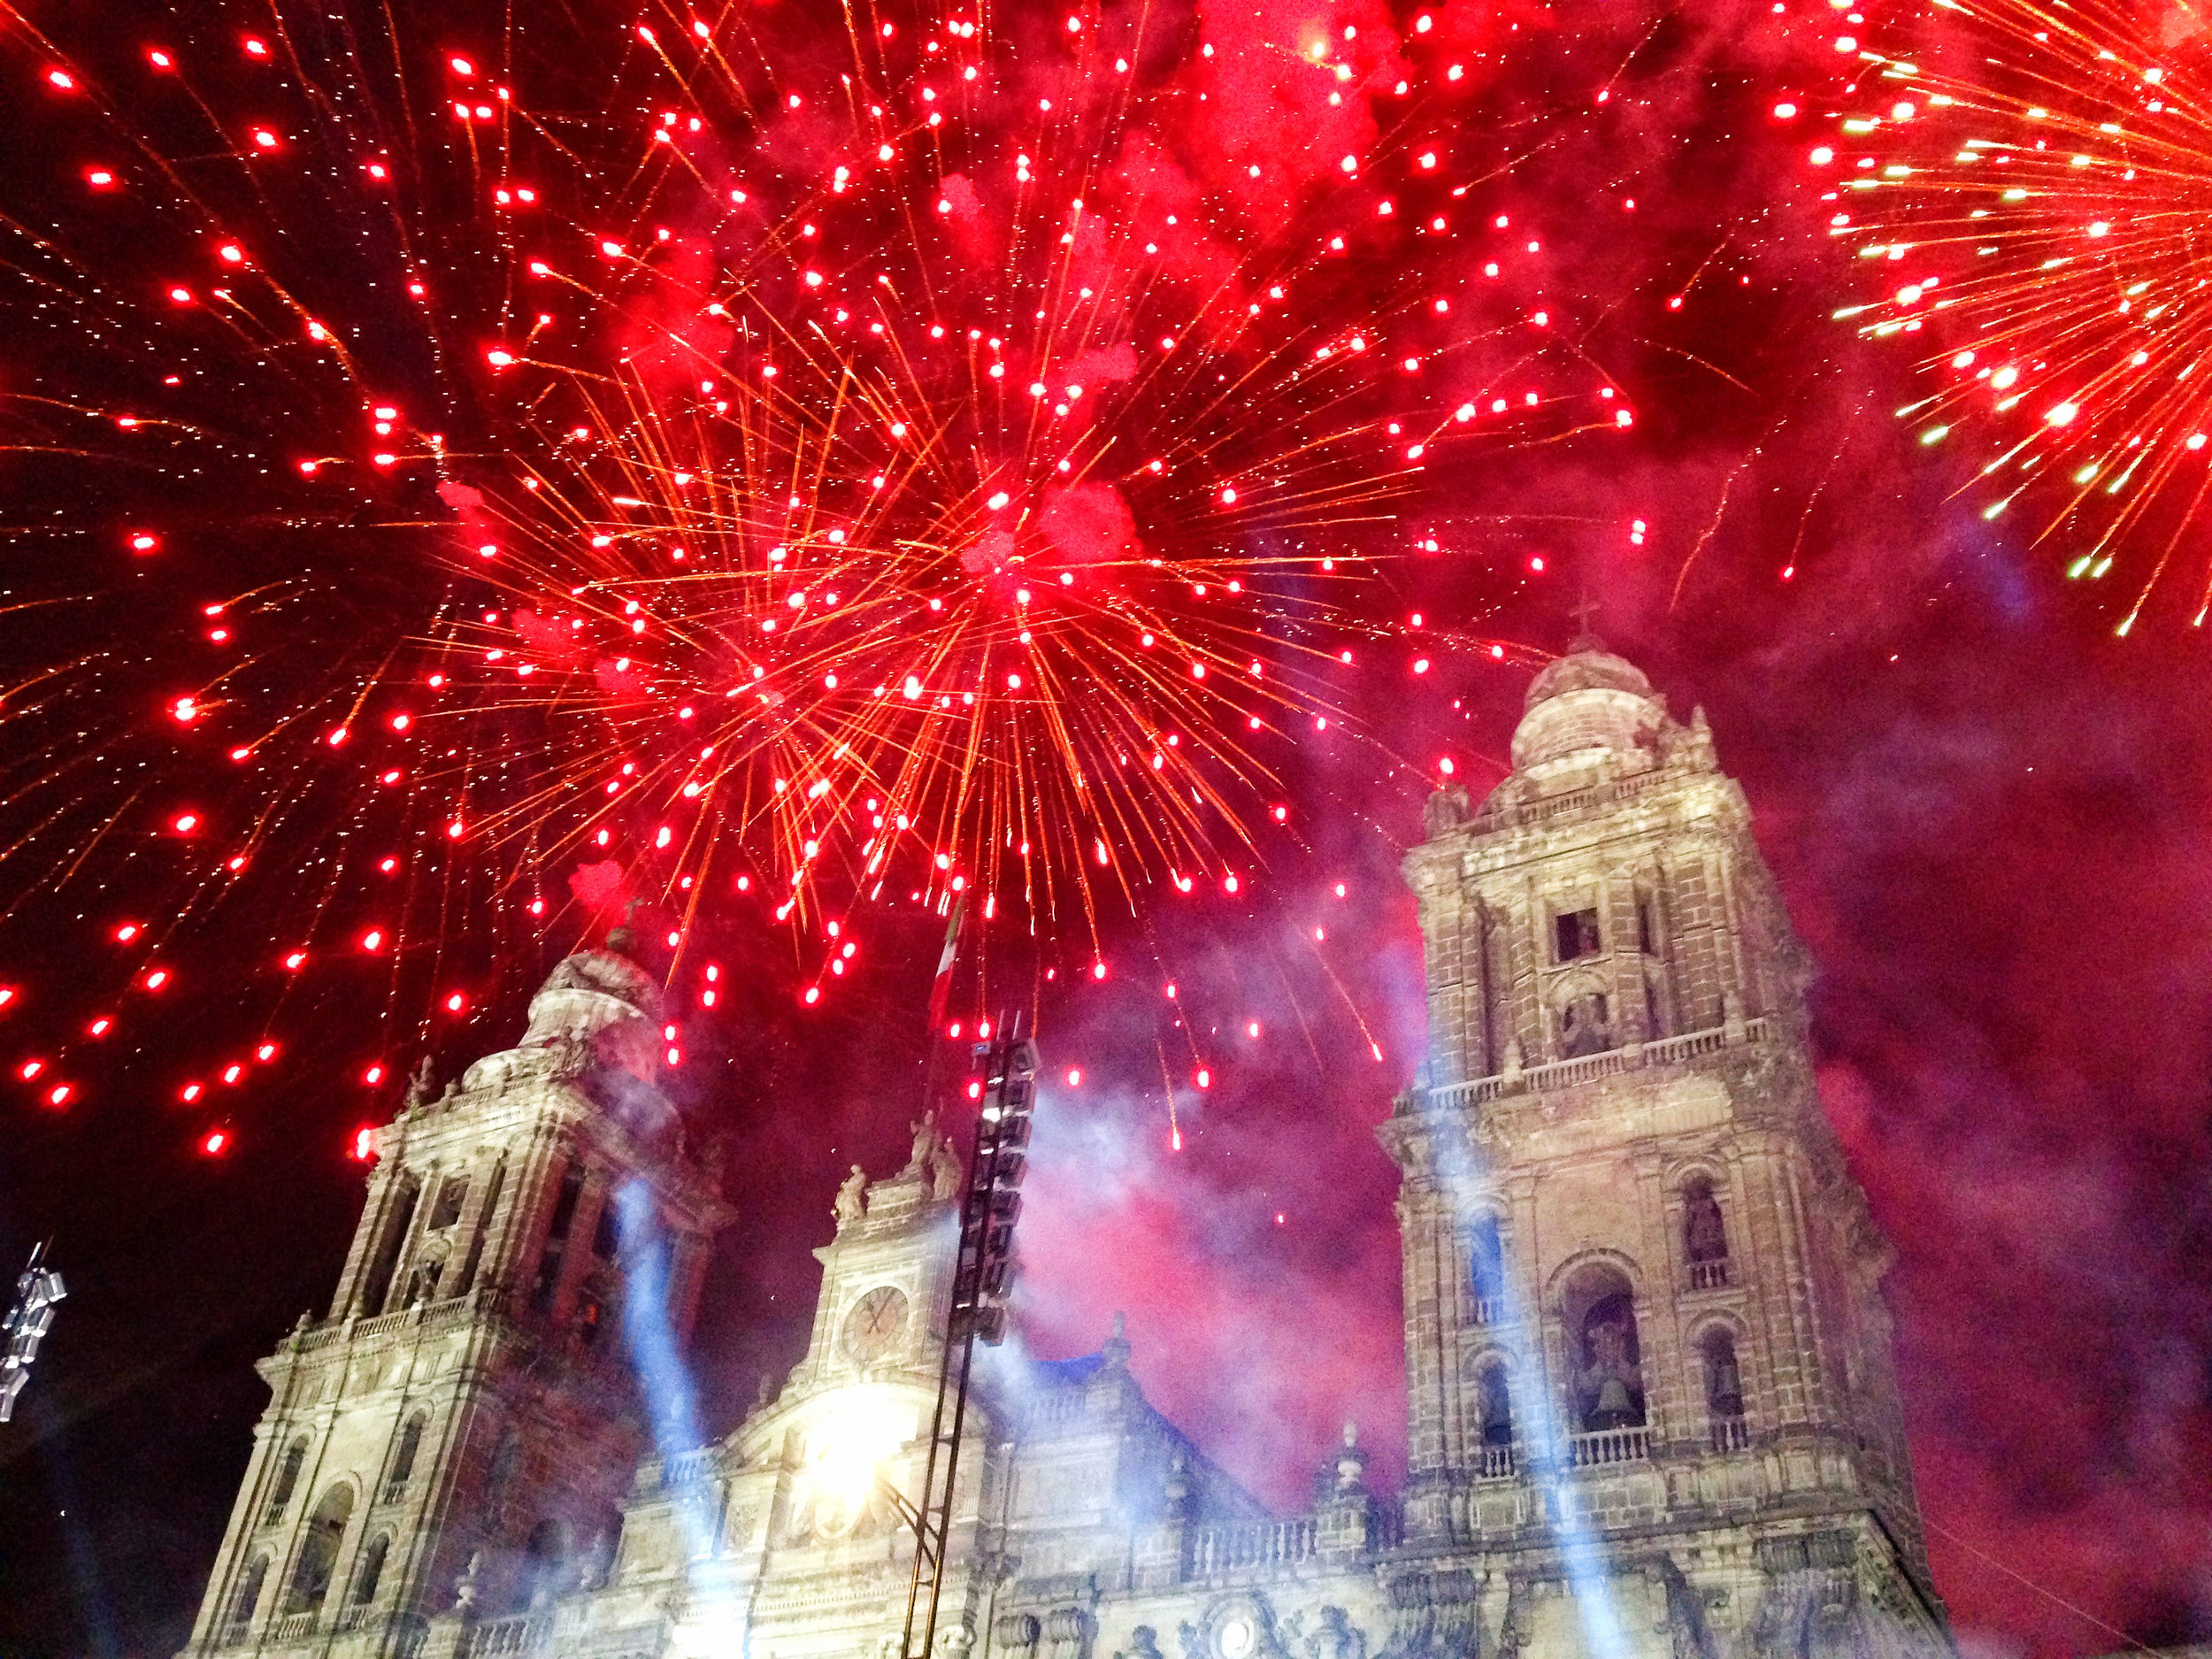 Viva M    xico  Celebrating Independence Day in Mexico City     Venture     CDMX Independence Day 1 jpg